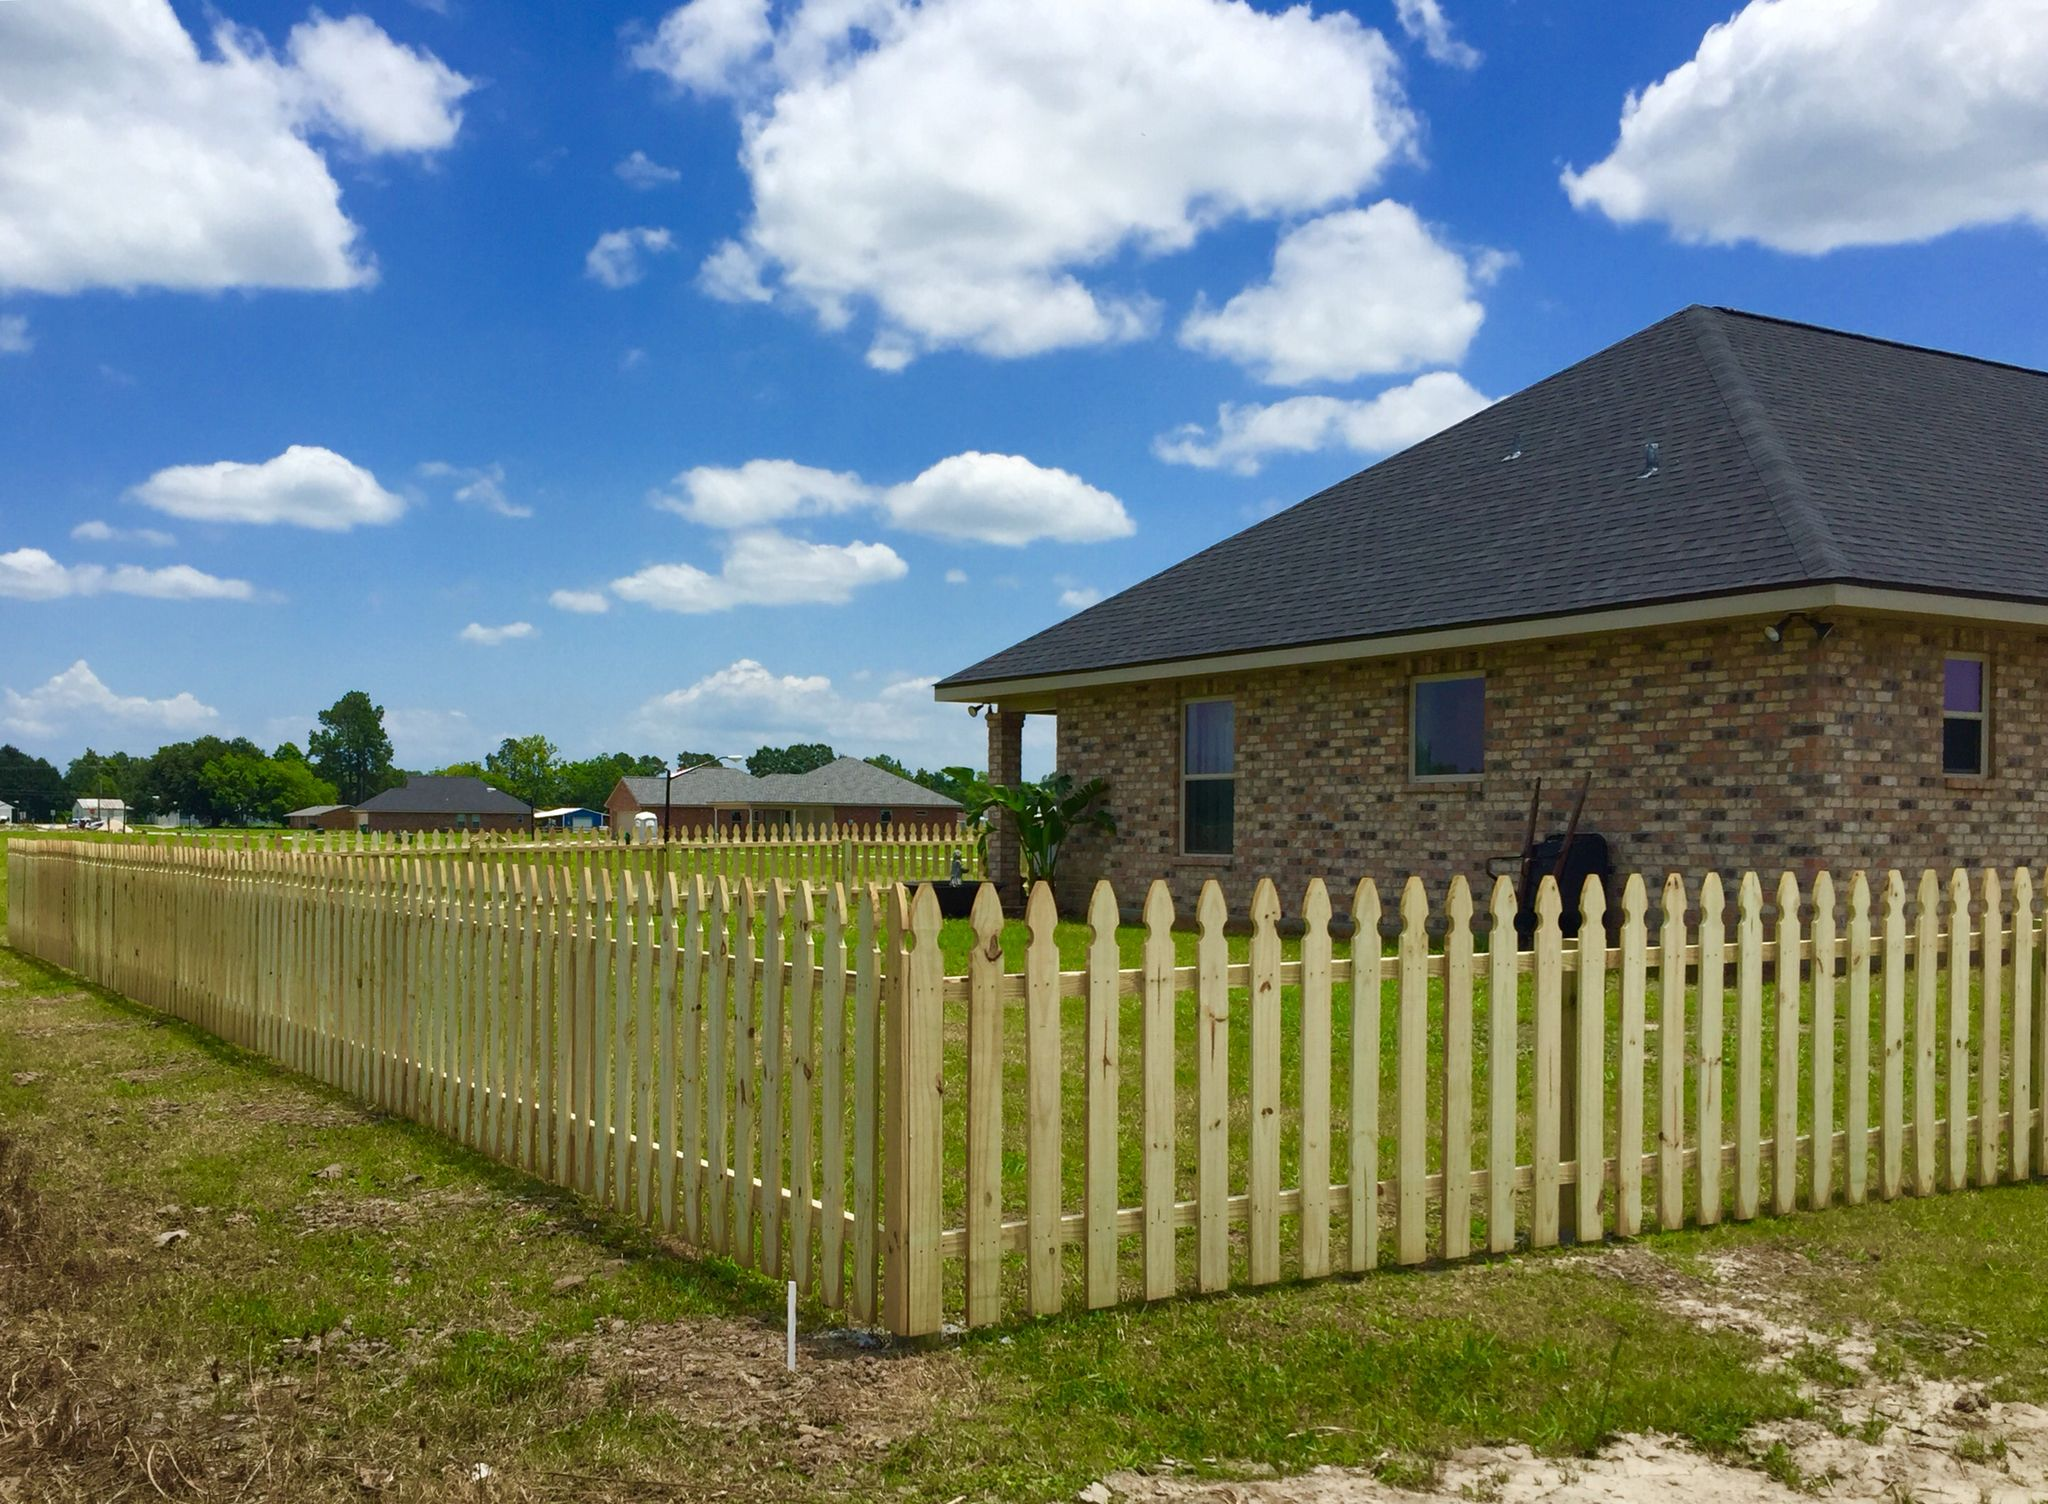 4 Ft Tall Treated Pine French Gothic Picket Benoit Fence Of Houma Inc Www Benoitfence Com Wood Fence Design Fence Design Fence